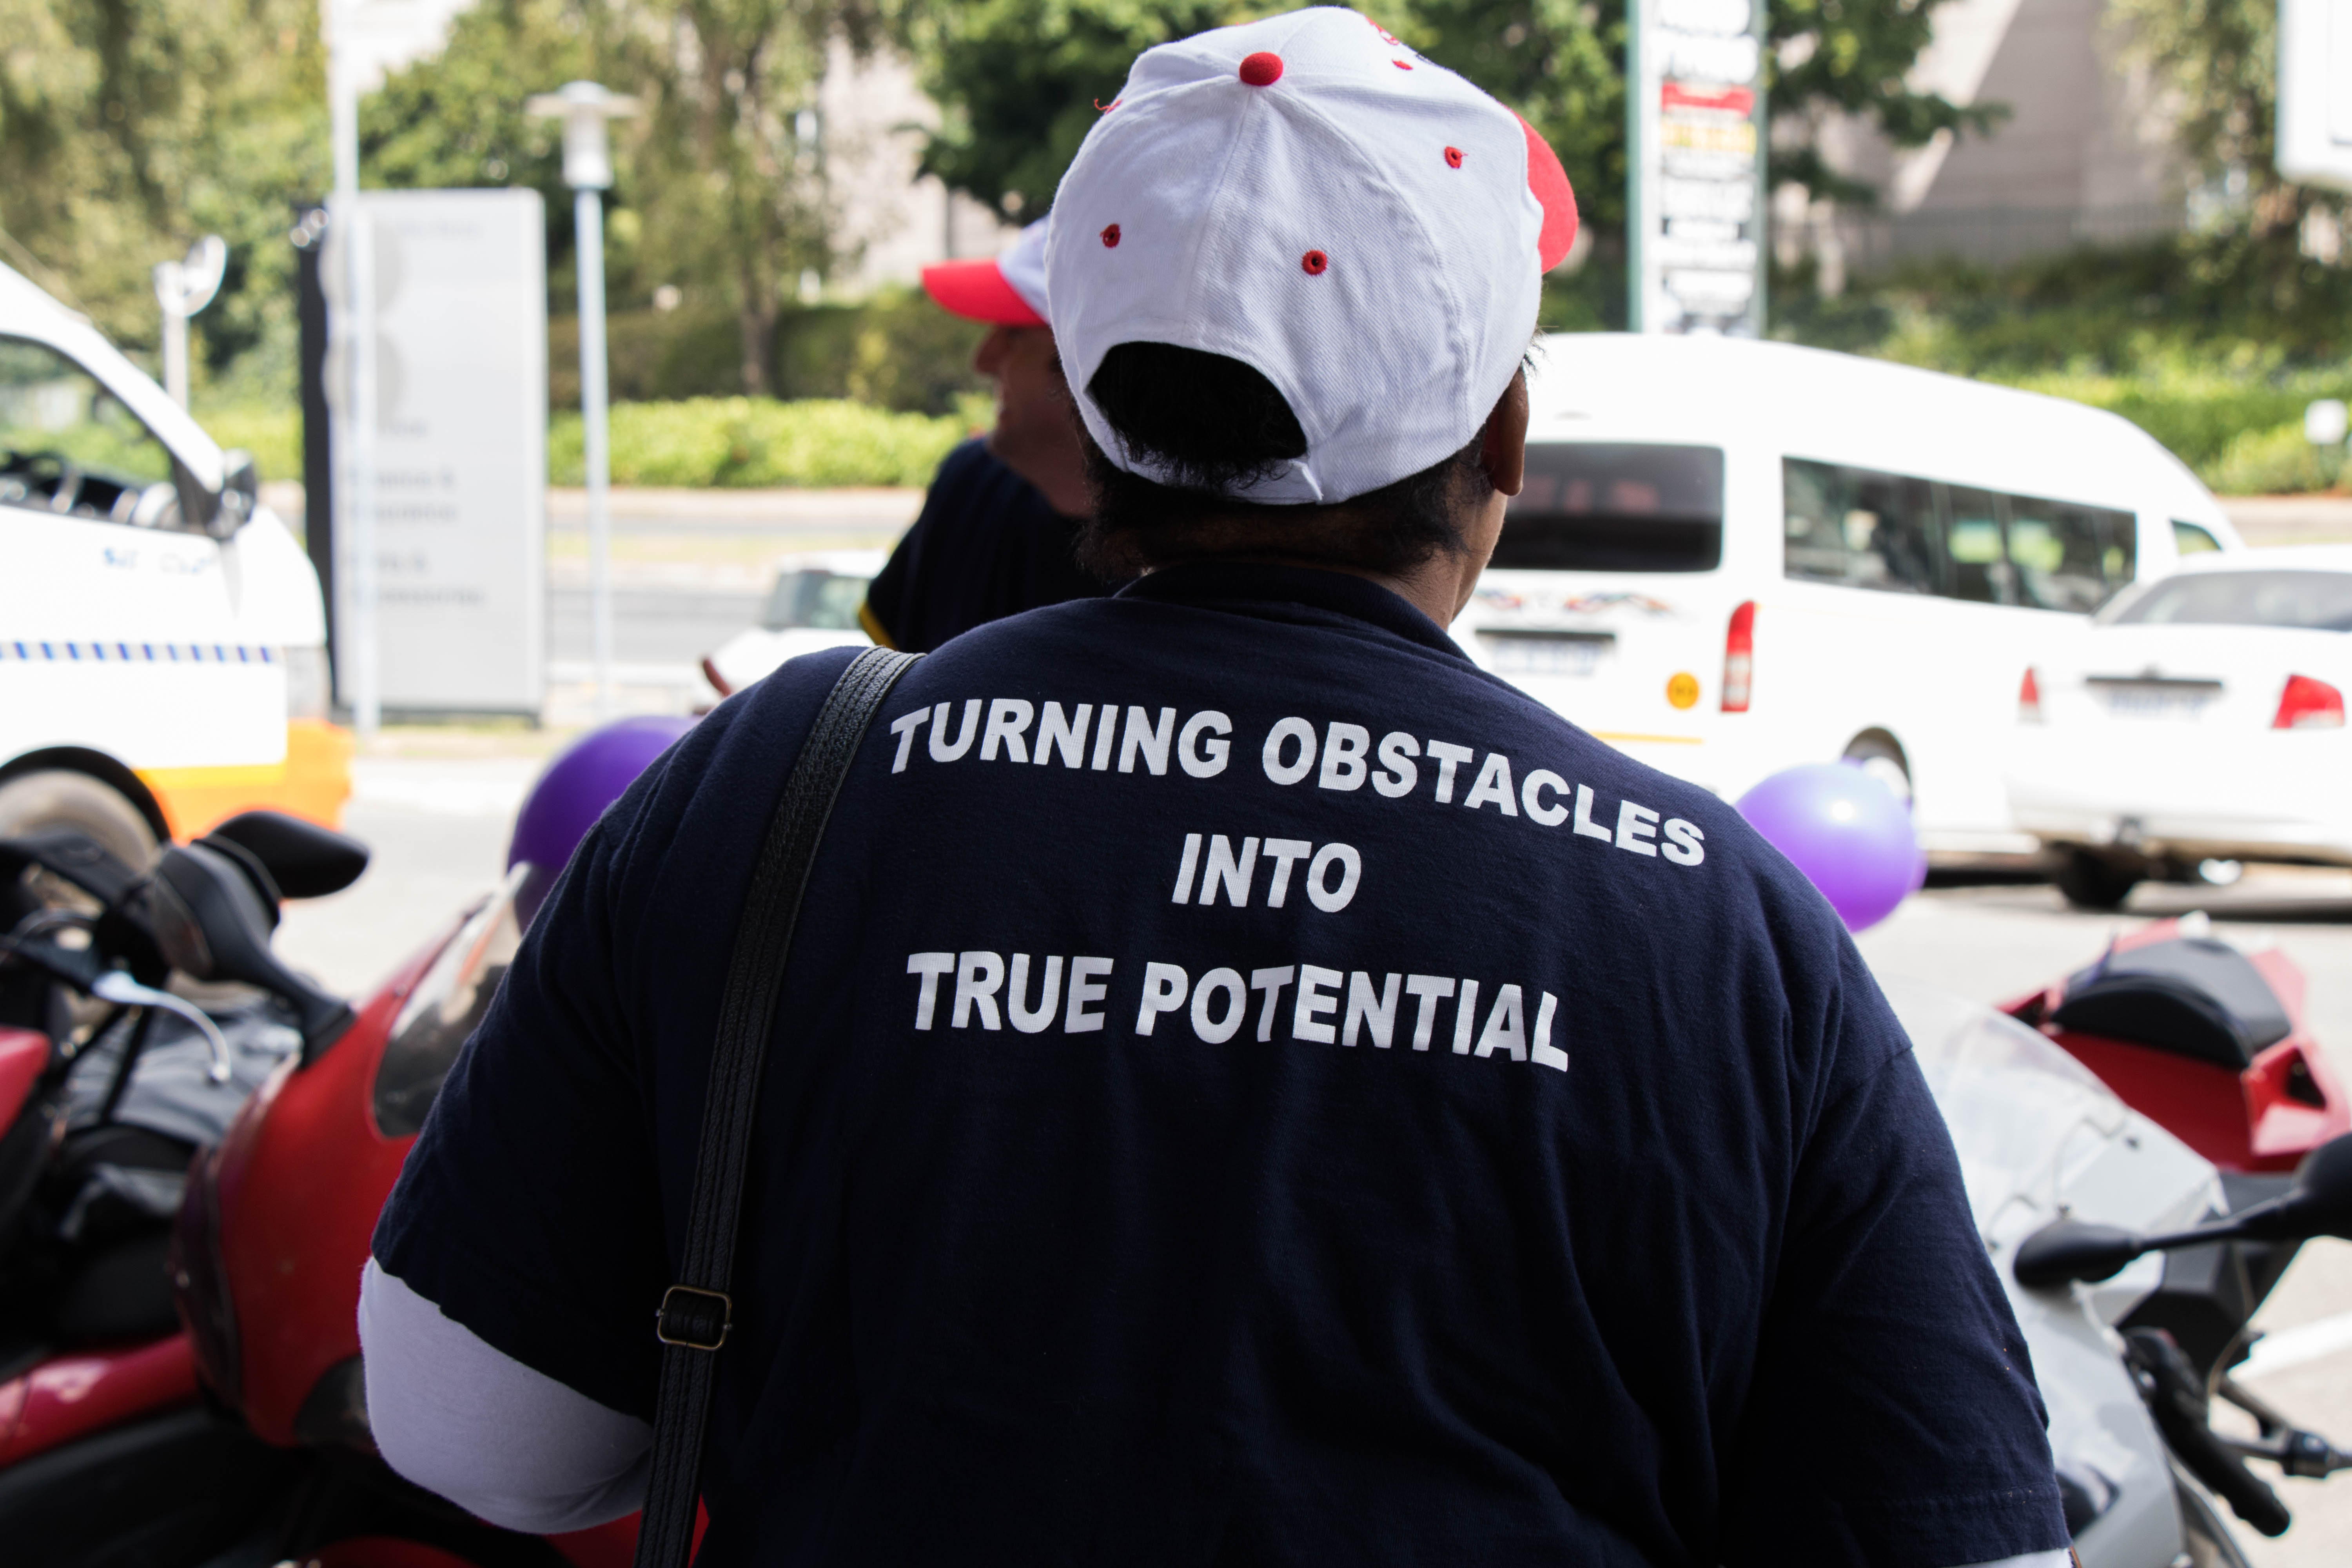 turn obstacles into potential